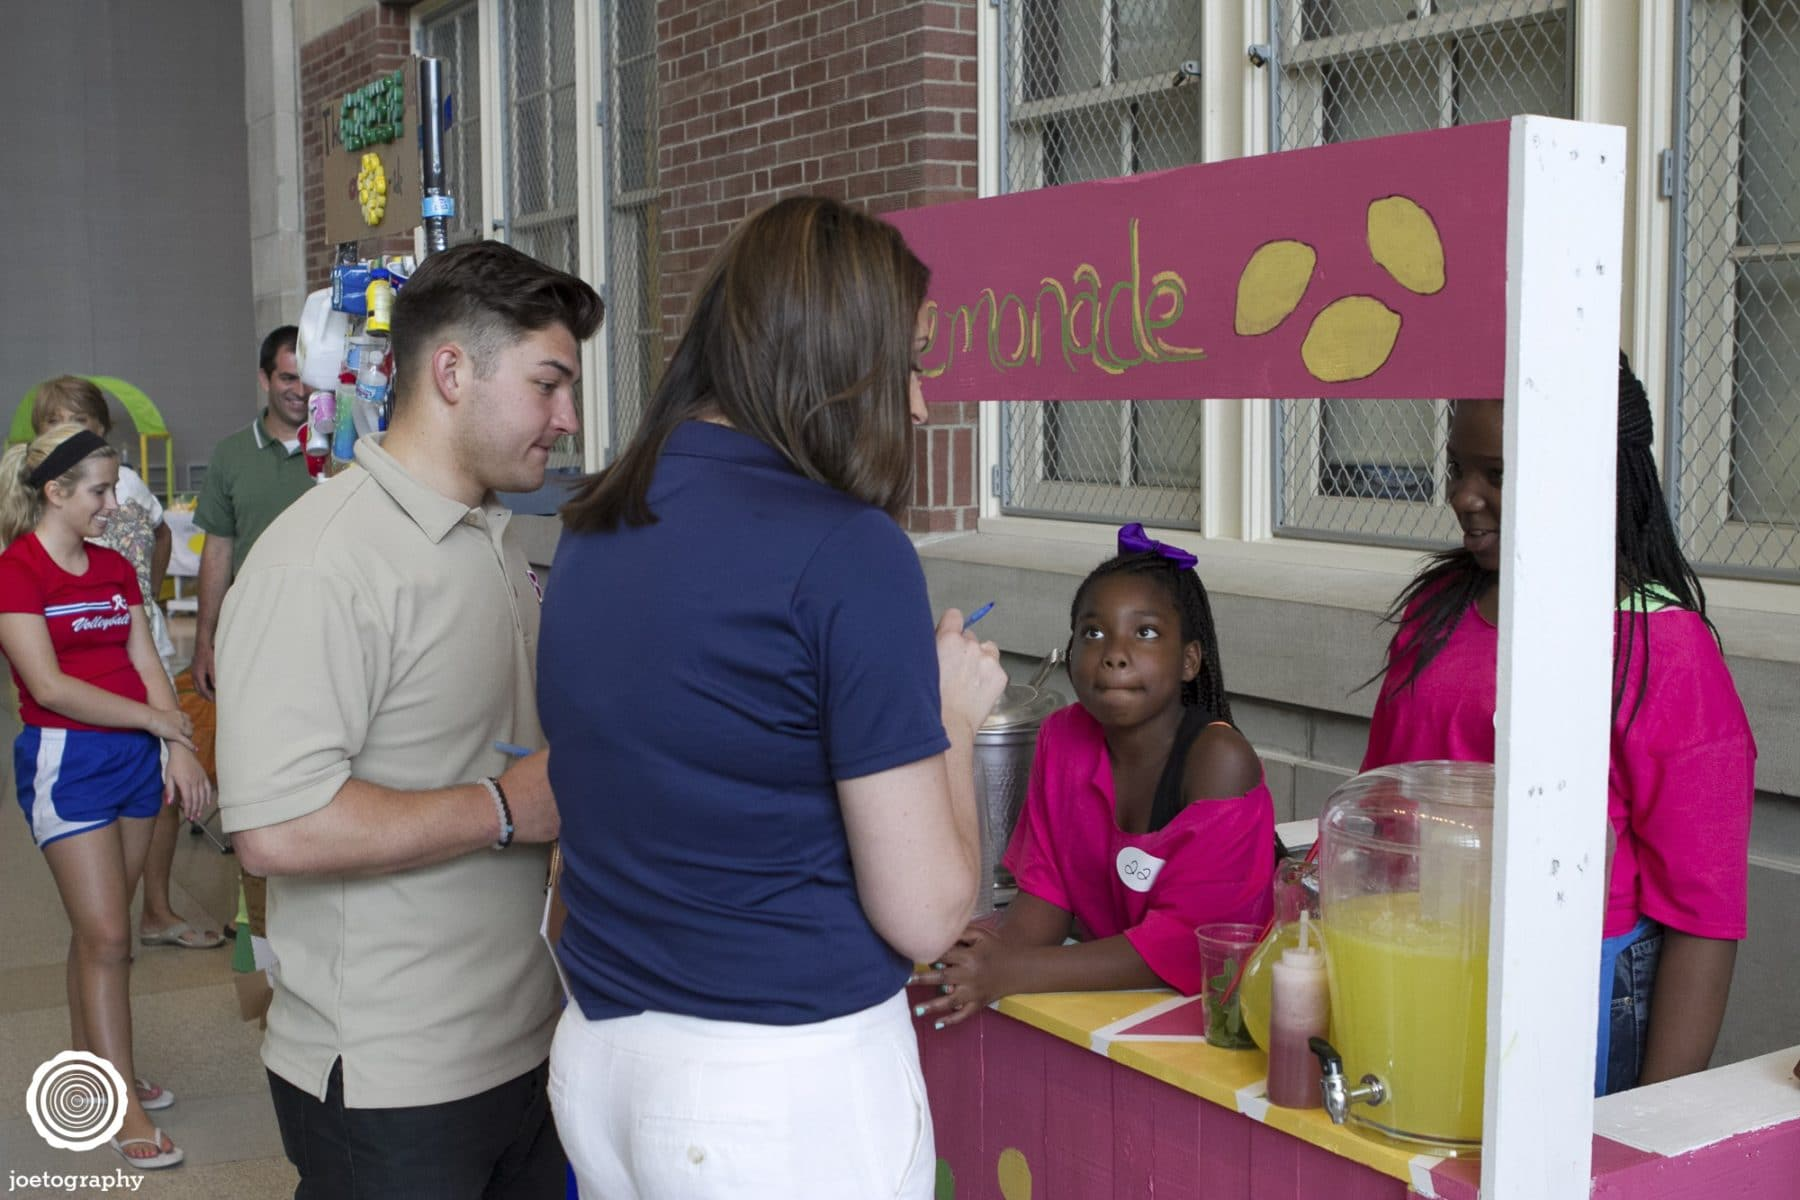 lemonade-day-2015-stand-contest-event-photography-indianapolis-14